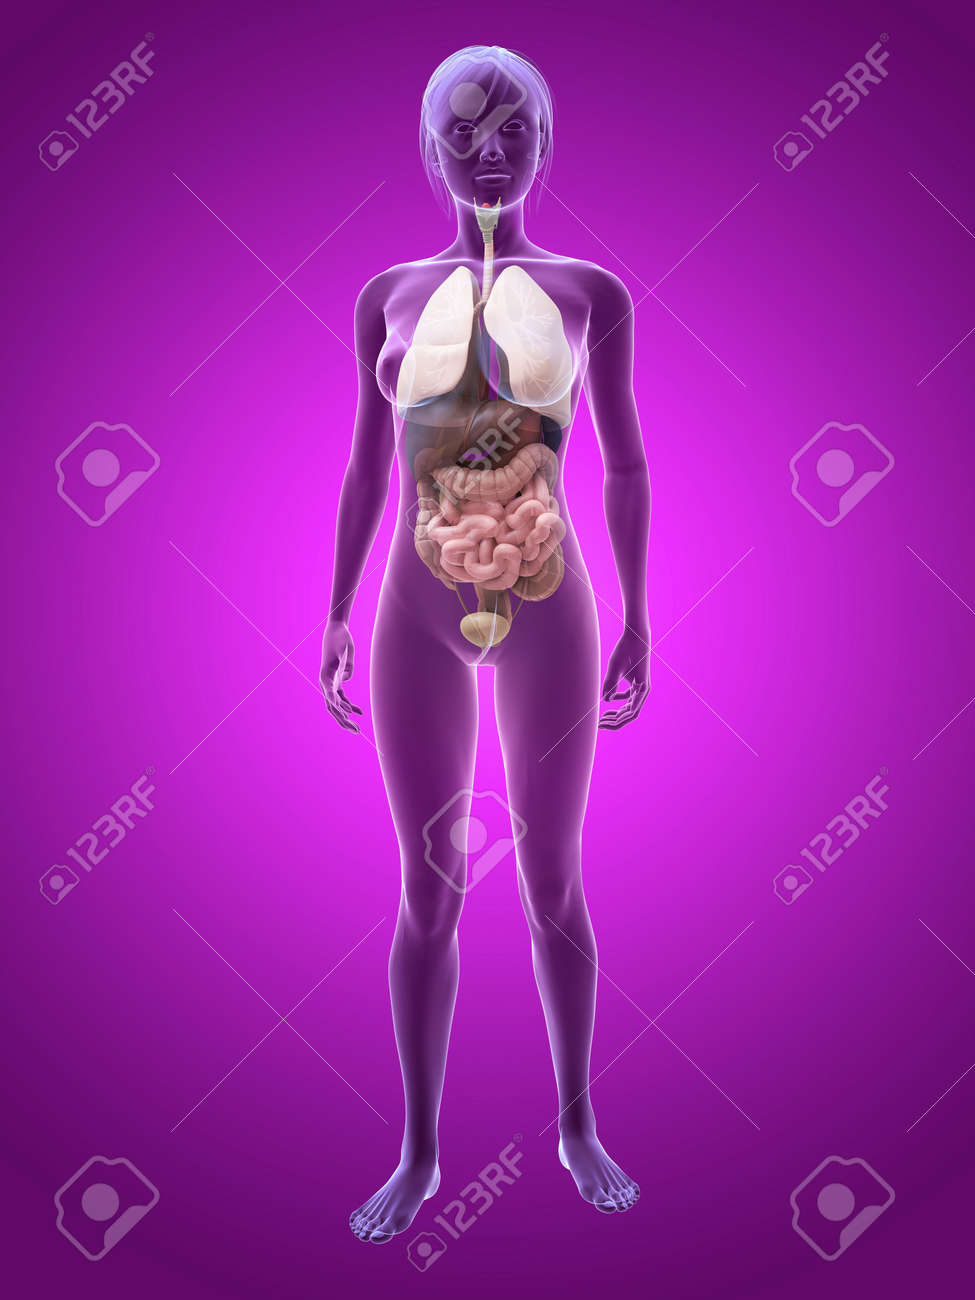 Transparent Female Body With Organs Stock Photo Picture And Royalty